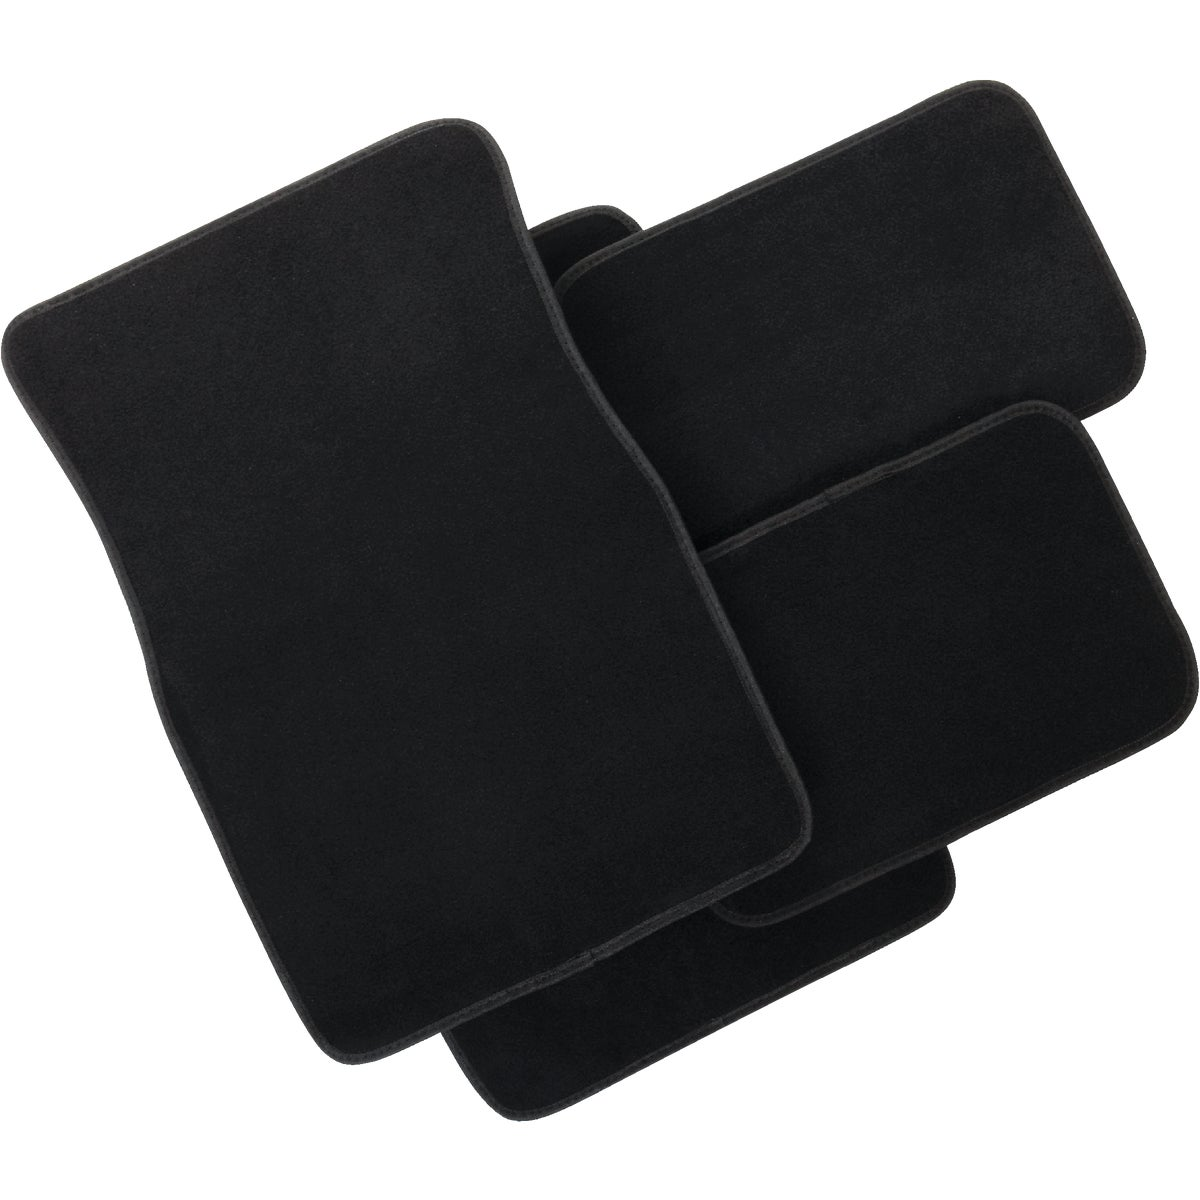 4PC BLK CARPET FLOOR MAT